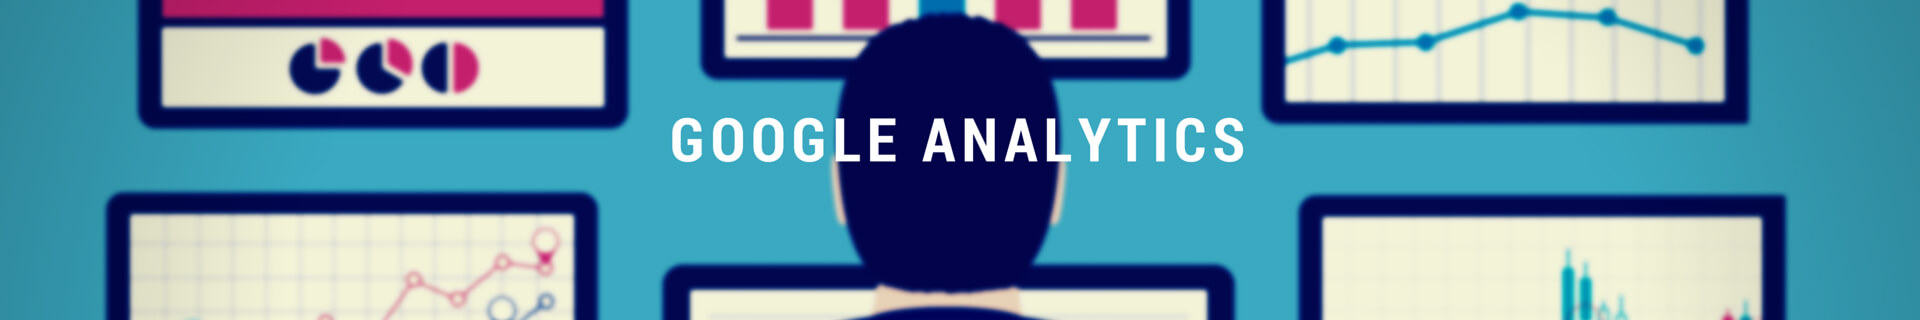 slider-googleanalytics